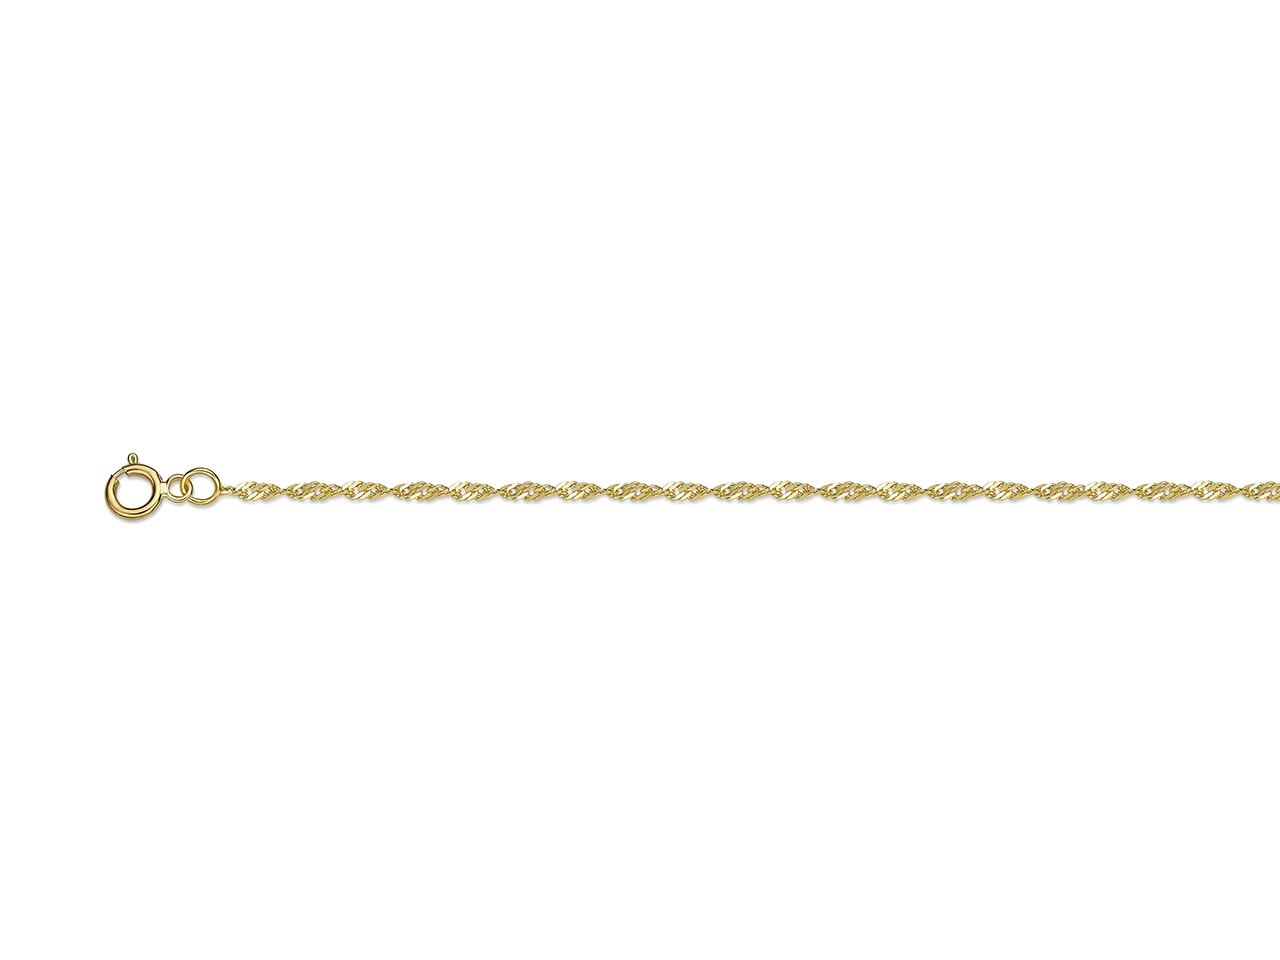 Collier Singapour 1,5 mm, Or jaune 18k, 45 cm